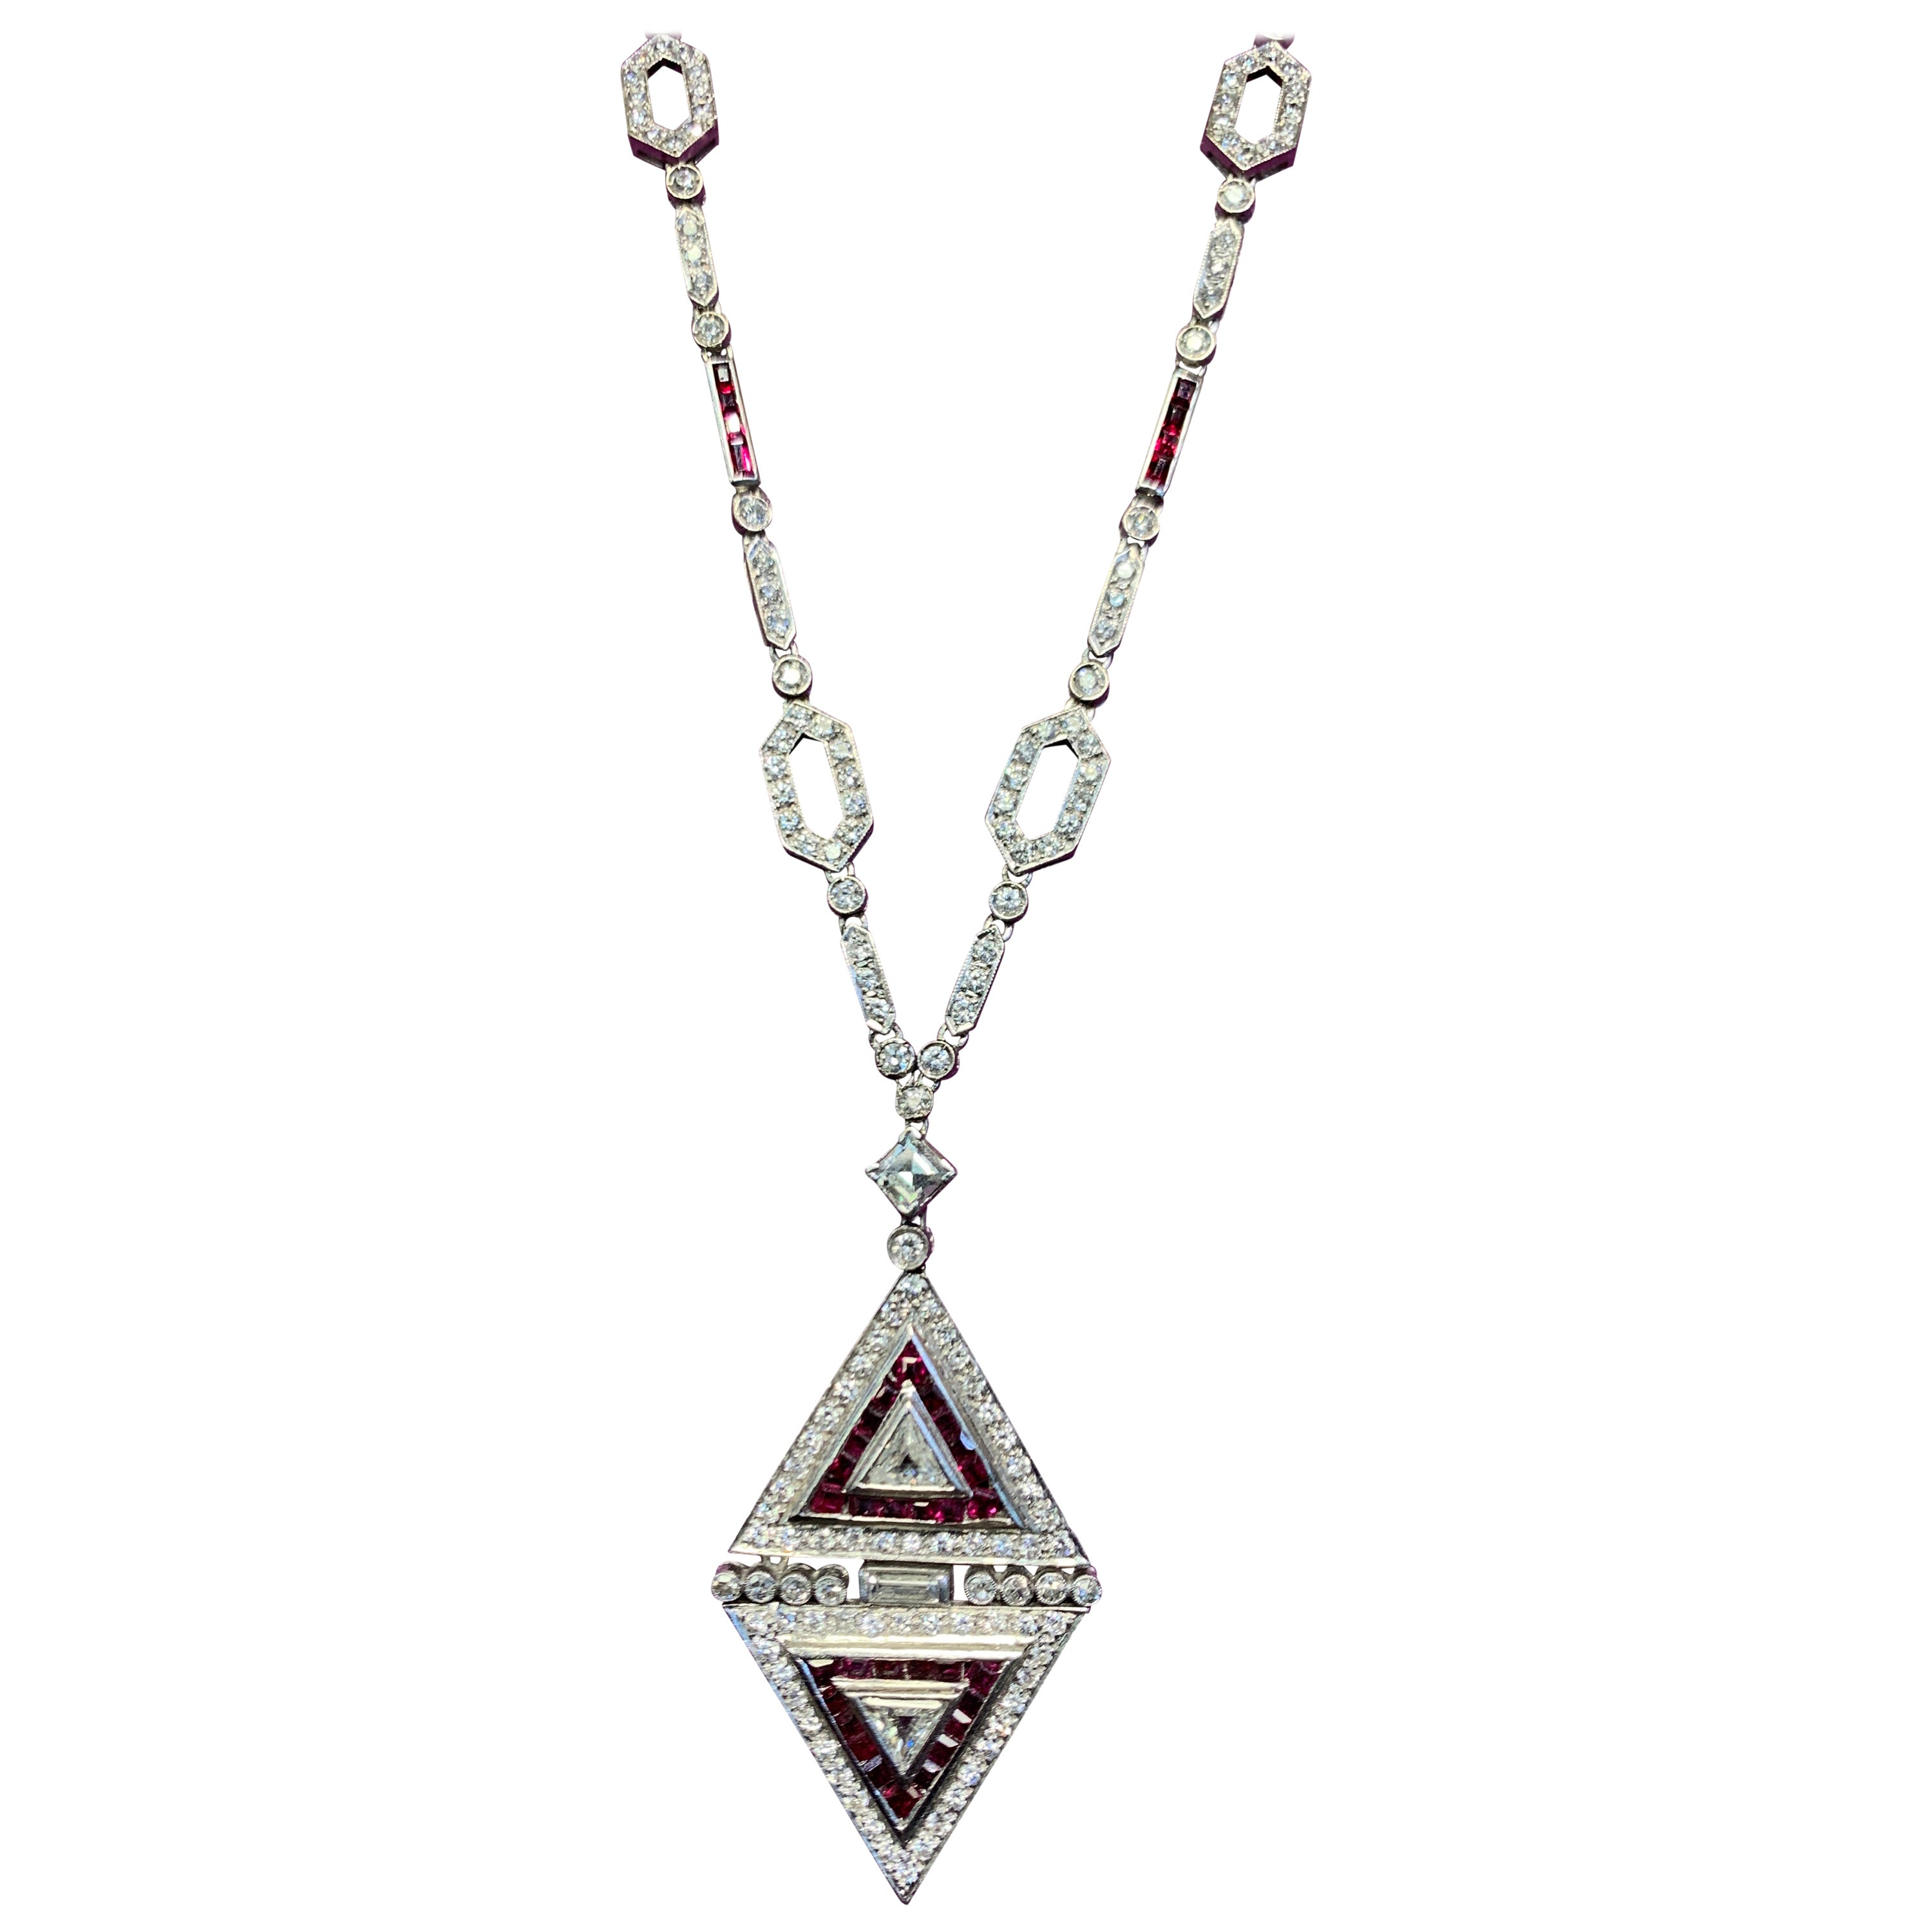 Diamond and Ruby Pendant Necklace